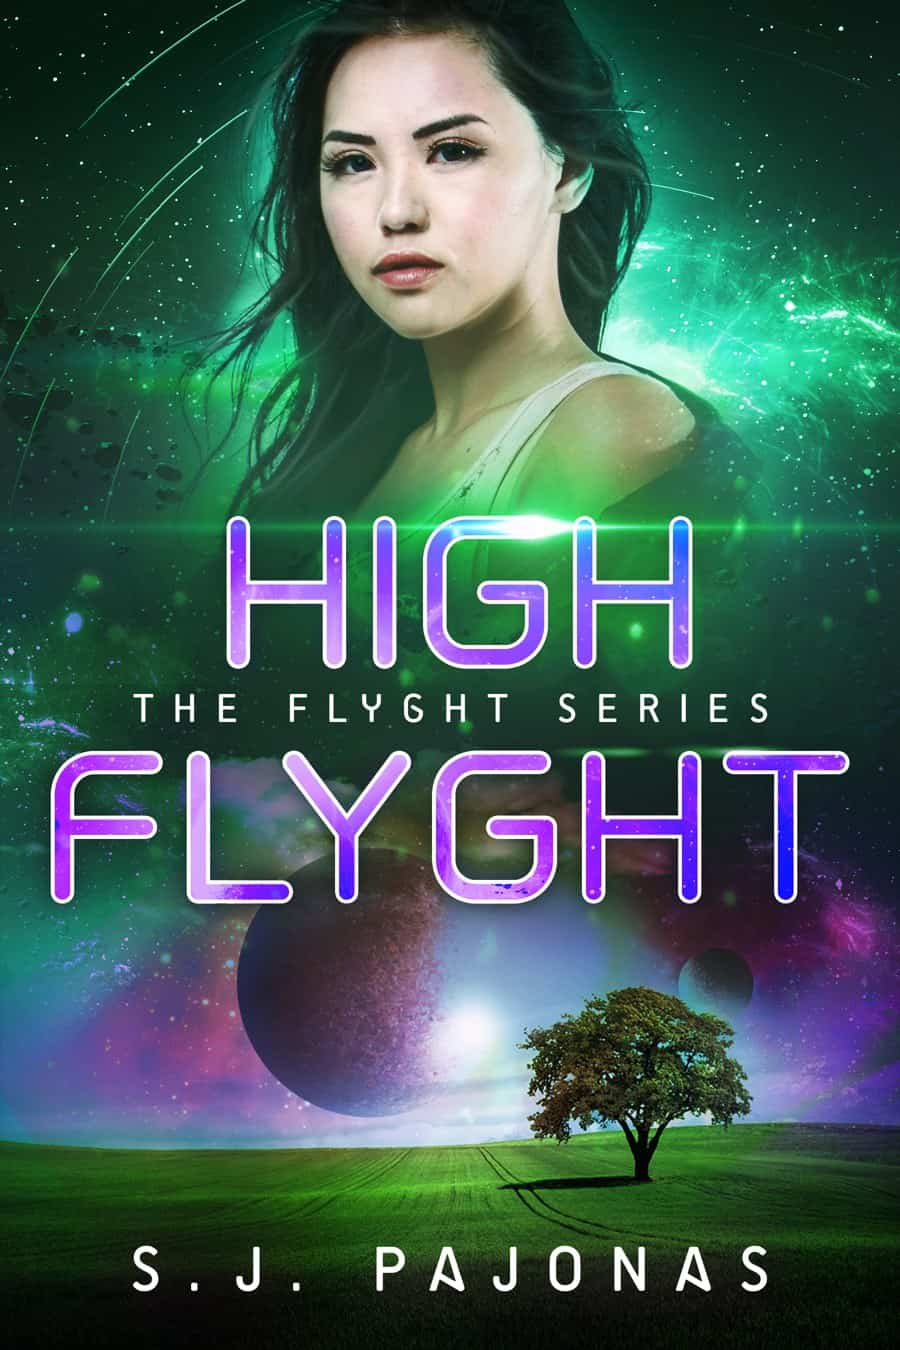 HIGH FLYGHT is now available on Amazon, Apple Books, Nook, Kobo, Google Play, and Direct. Get the third book in this science fiction reverse harem romance and enjoy your adventures with Vivian and the crew of the Amagi!